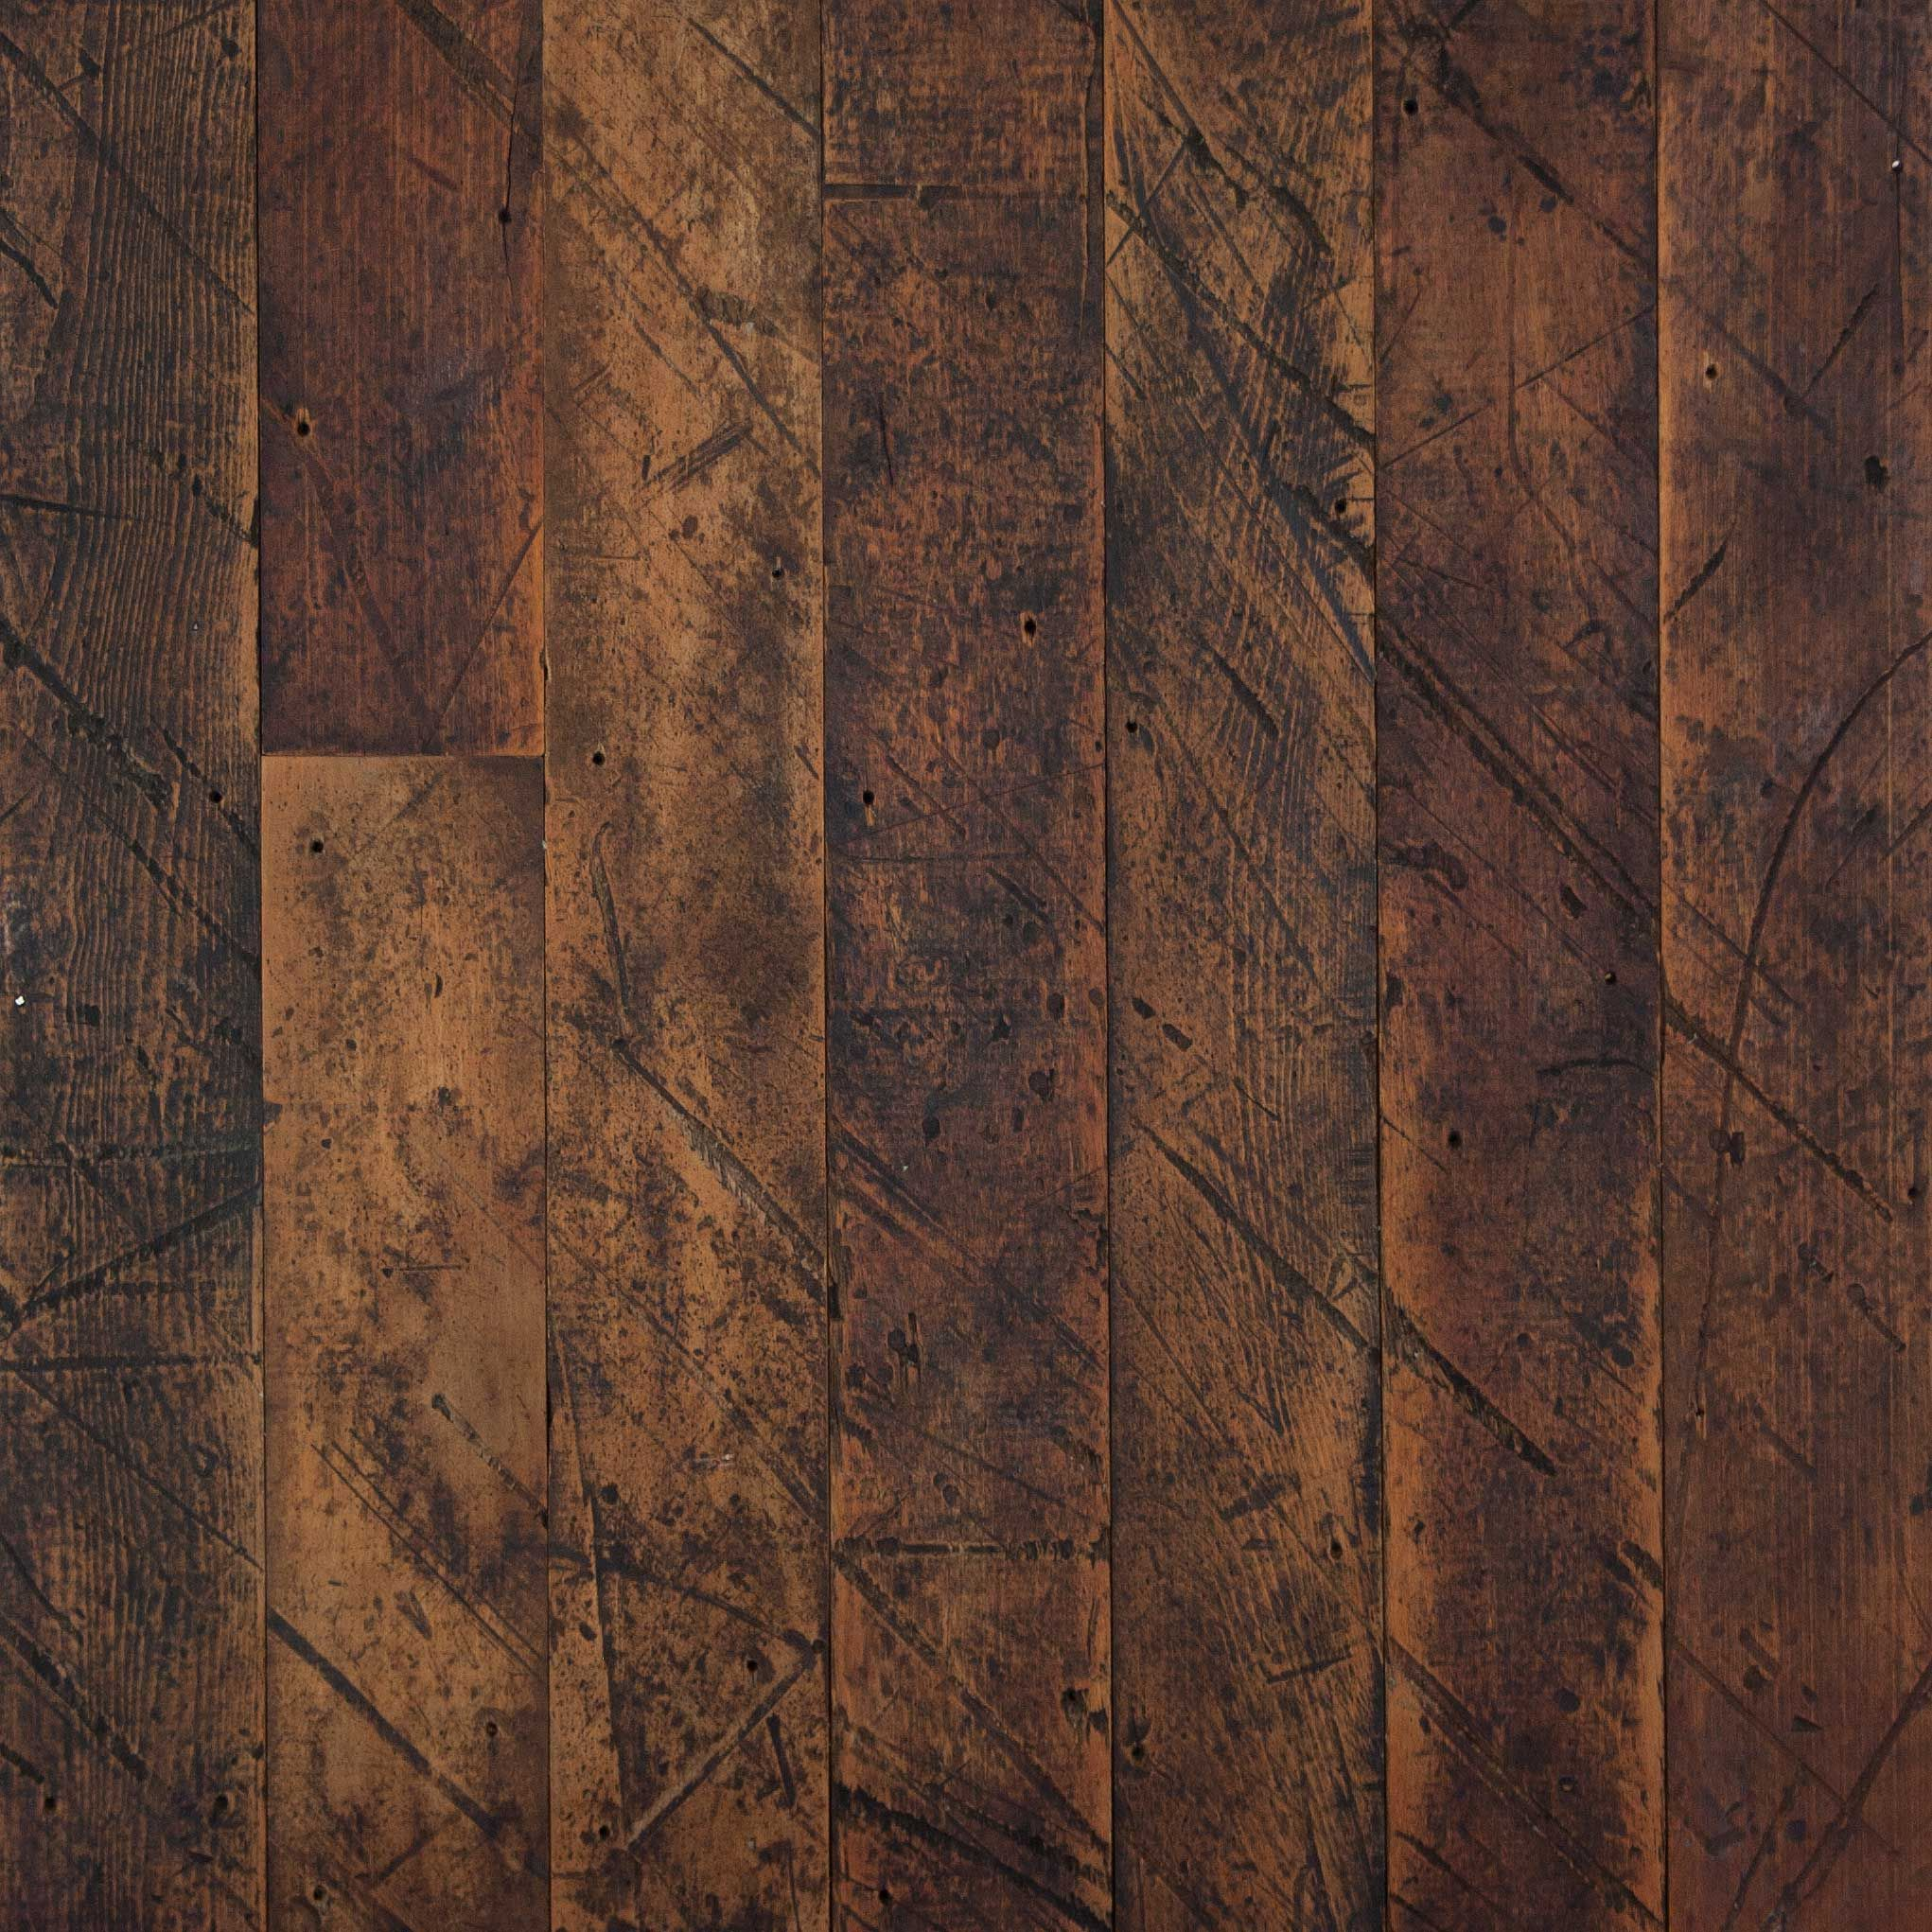 Longleaf lumber reclaimed factory maple flooring for Reclaimed hardwood flooring